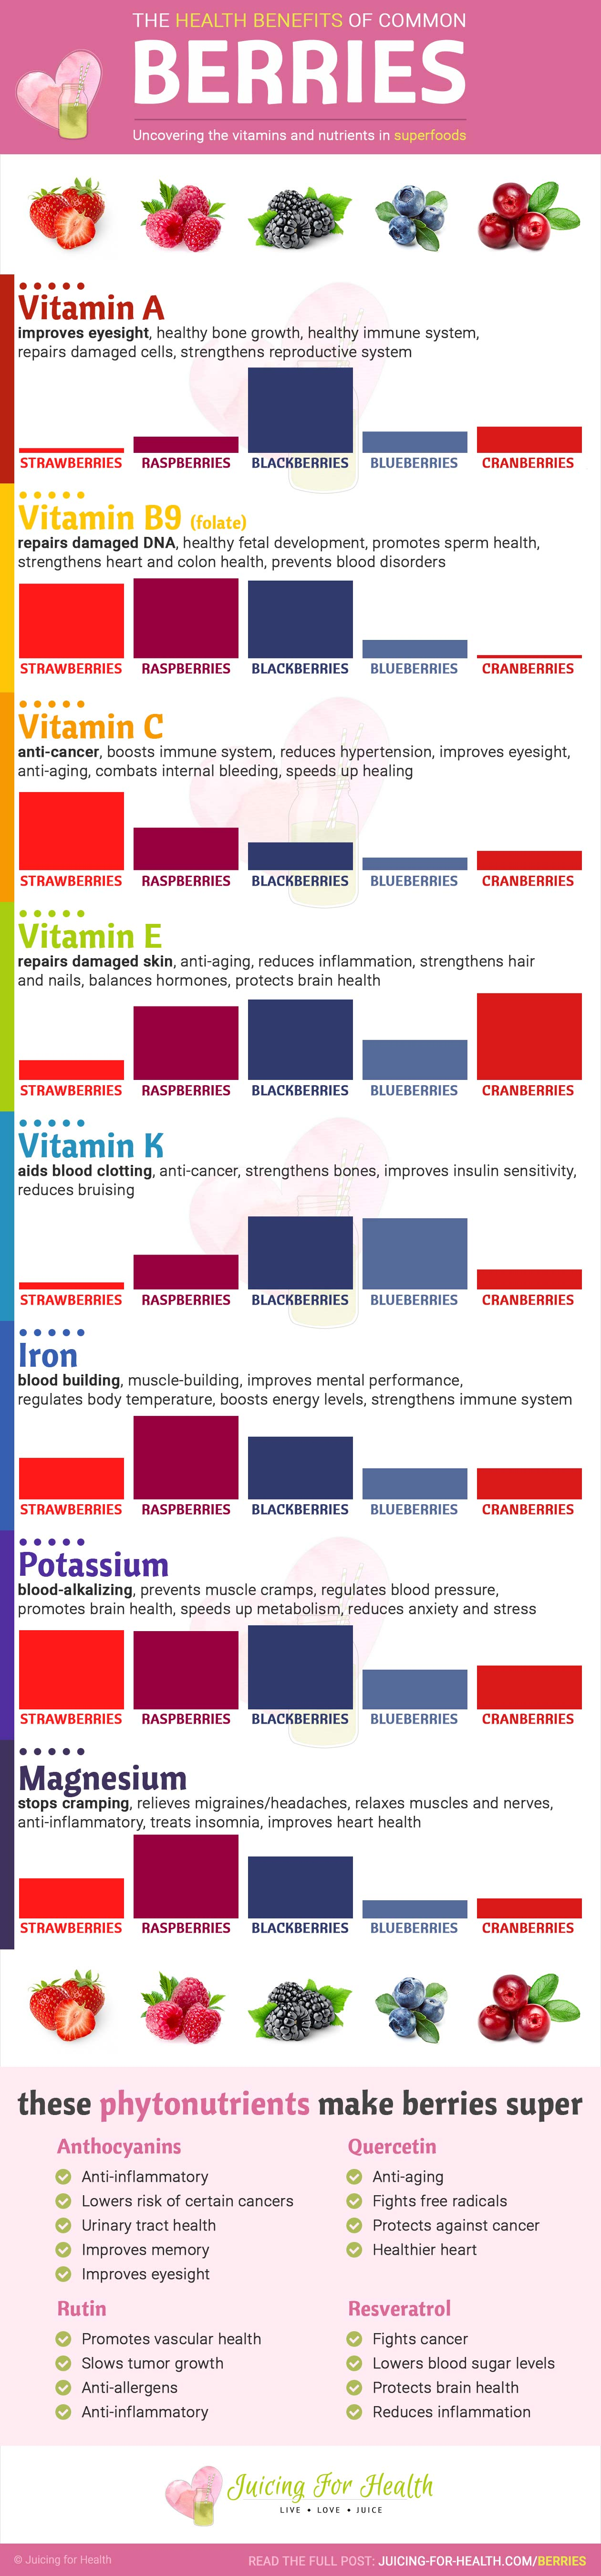 Infographic - health benefits of berries